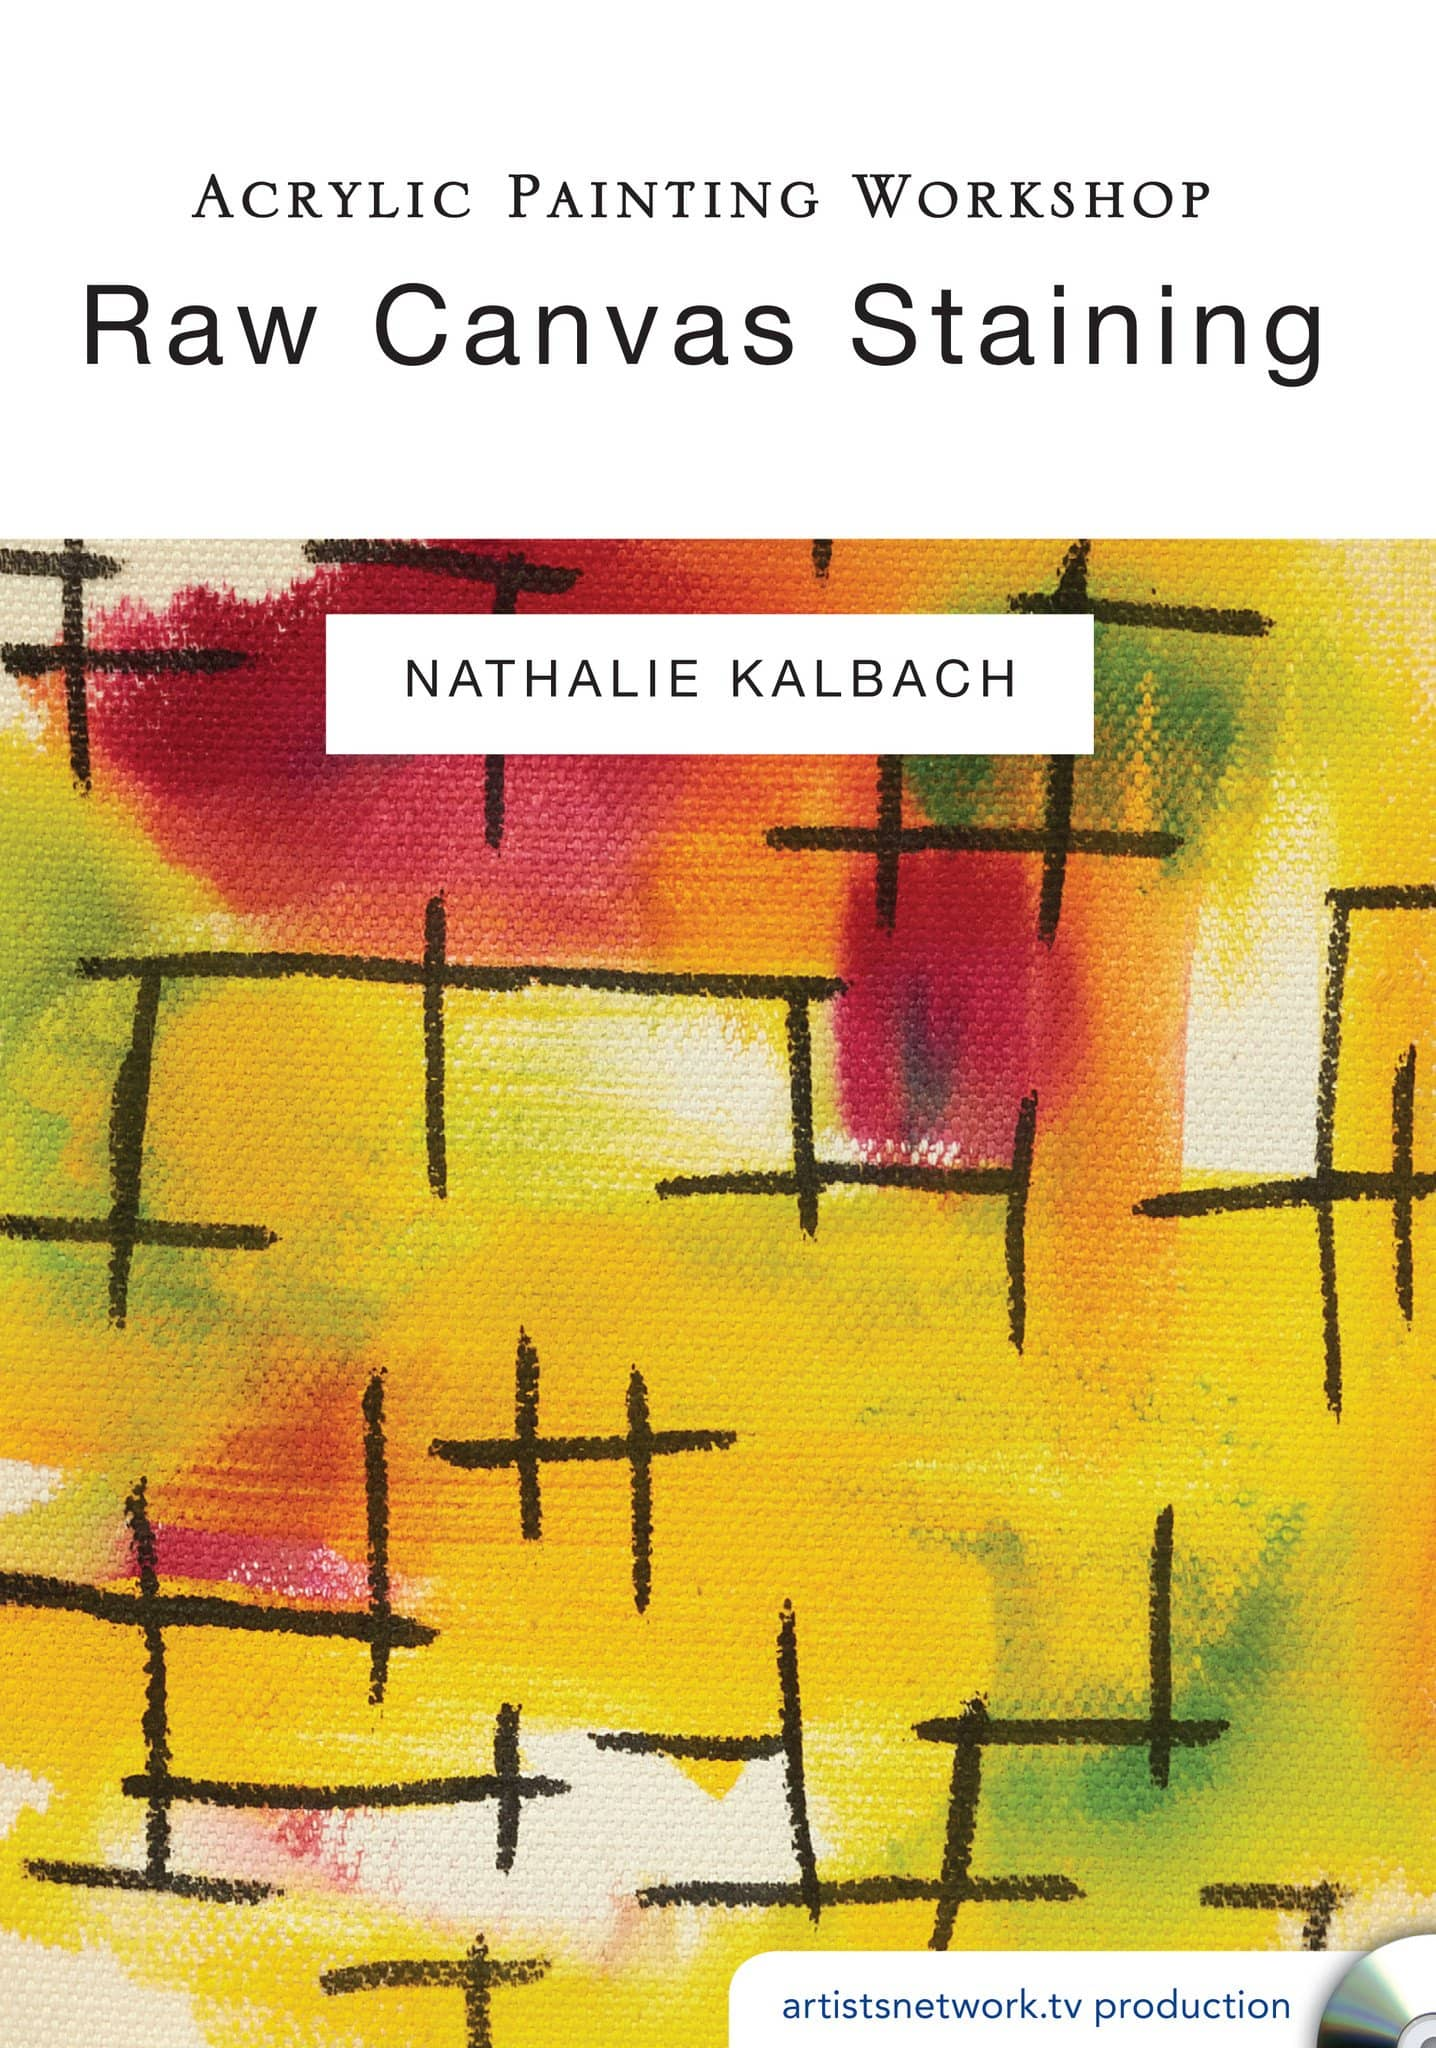 Acrylic Painting Workshop:  Raw Canvas Staining with Nathalie Kalbach